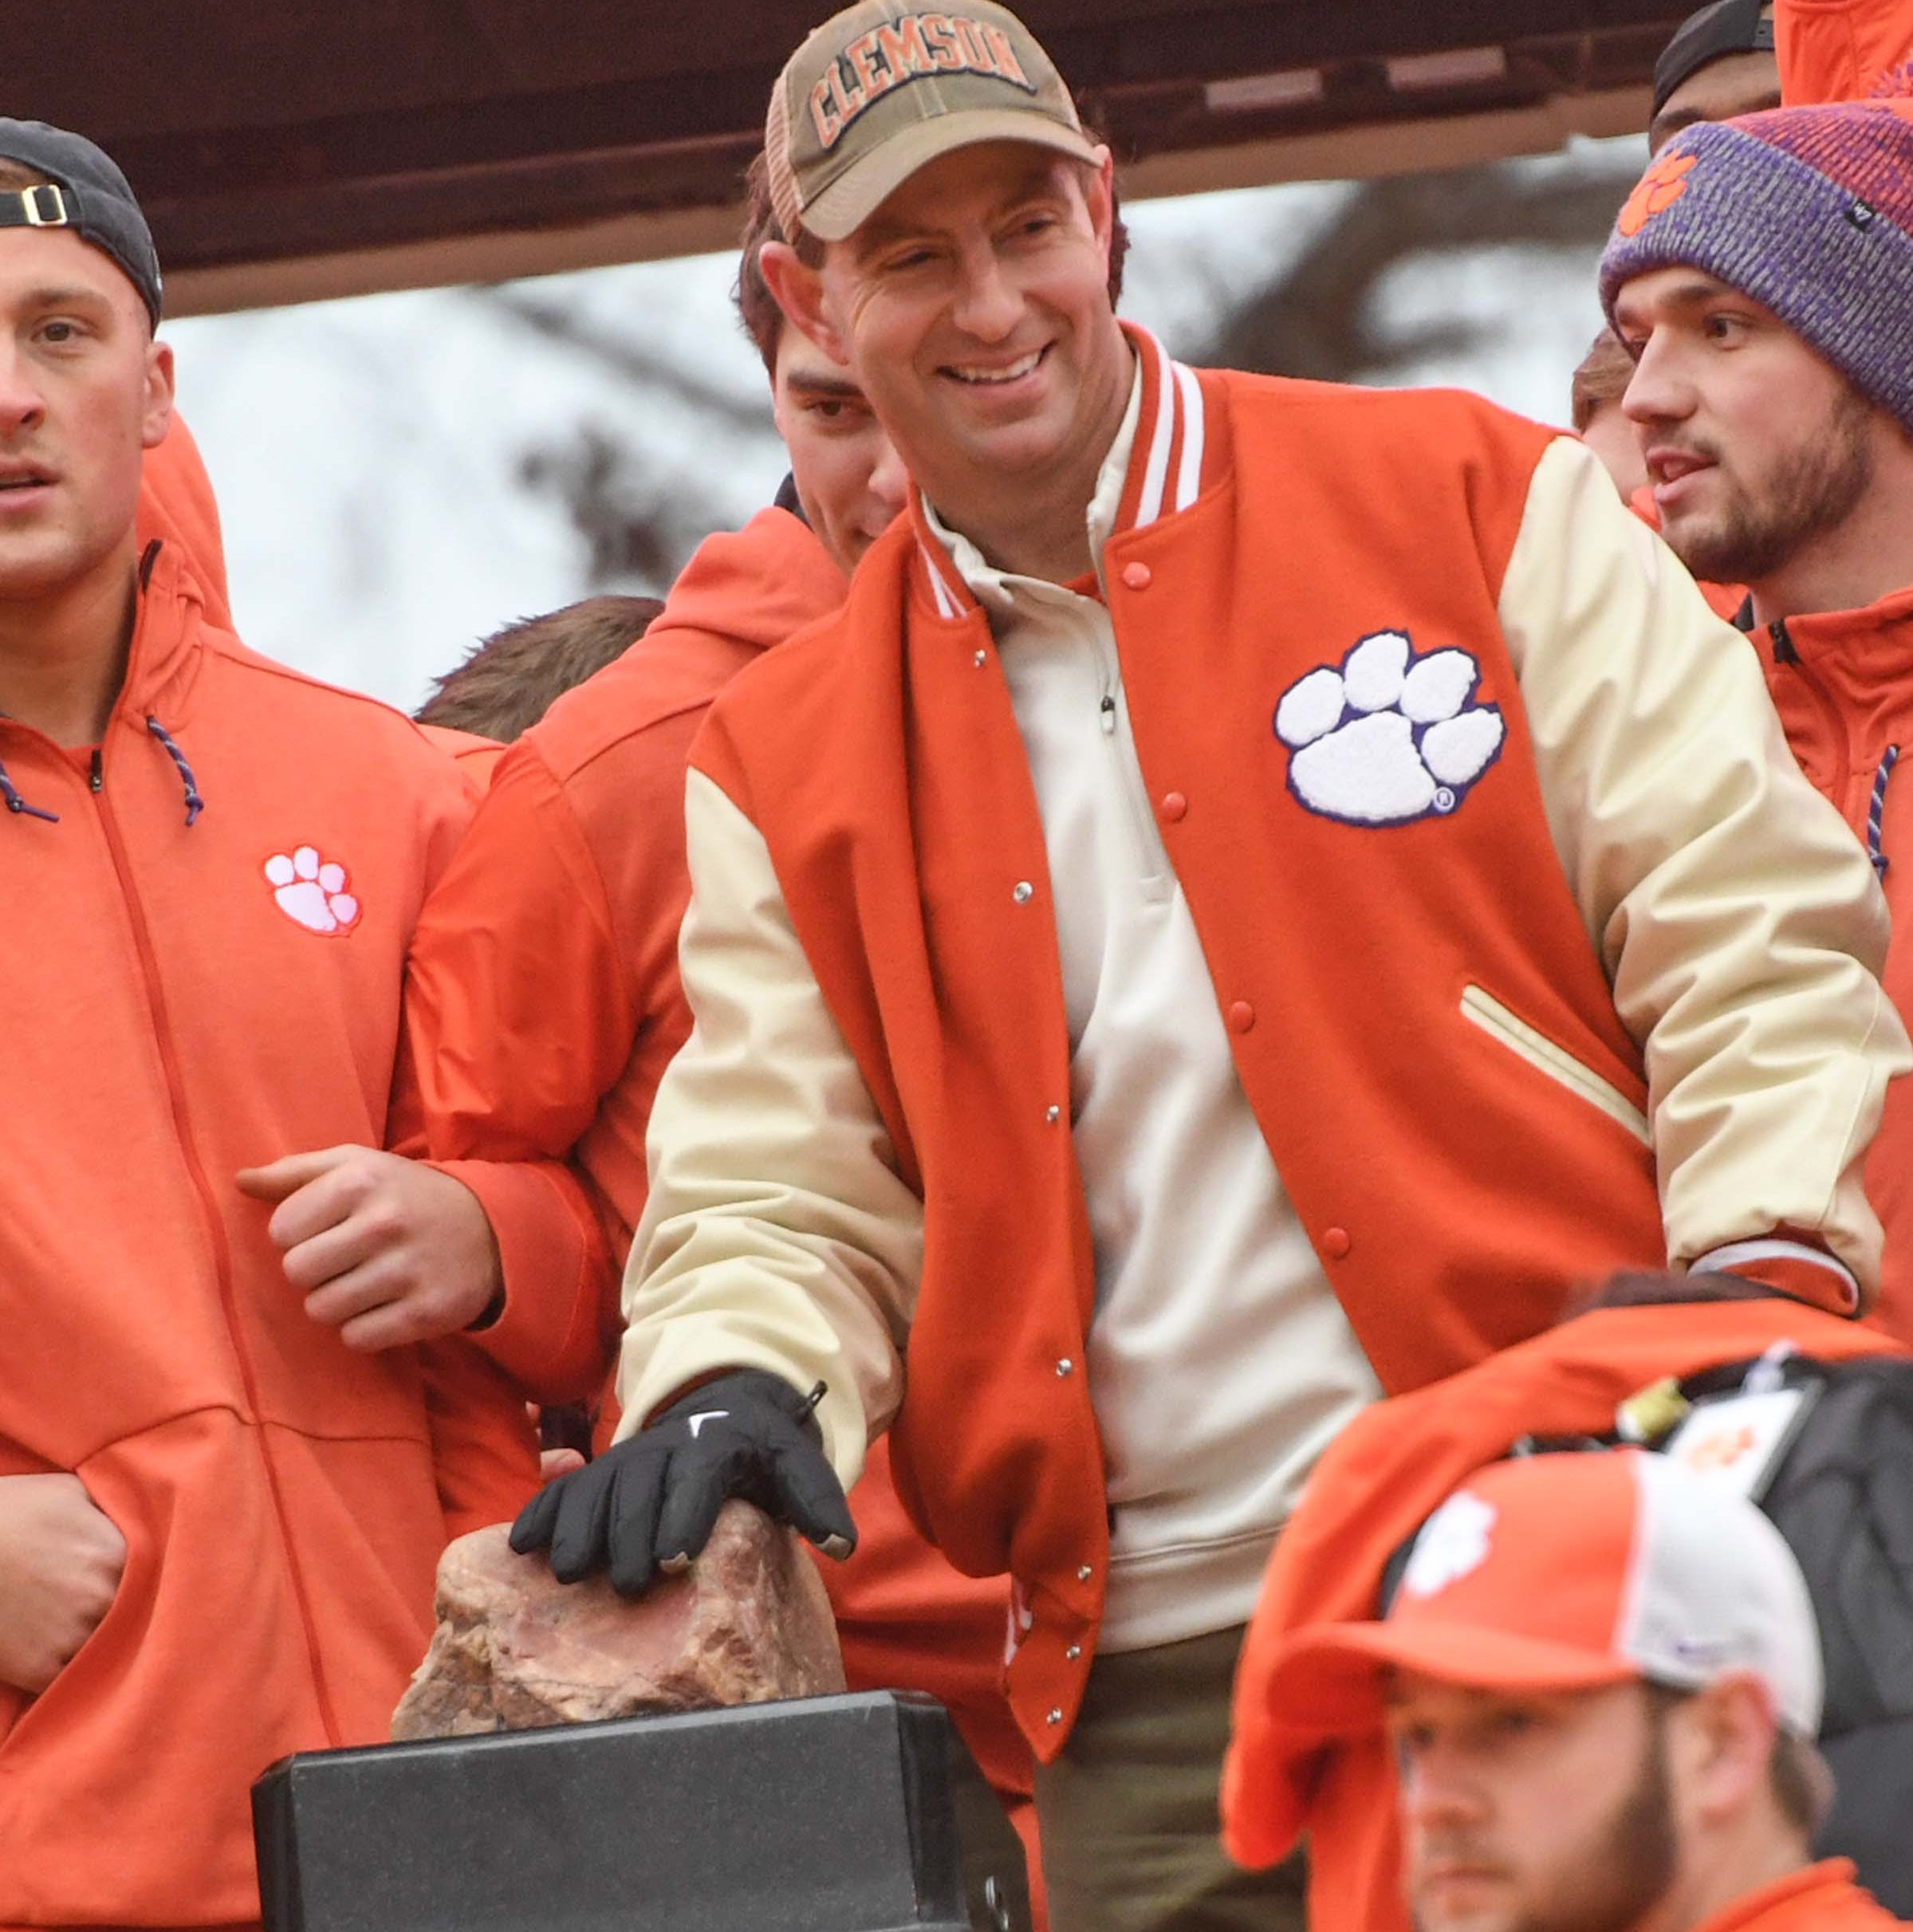 Clemson's 2019 football schedule should provide some early challenges